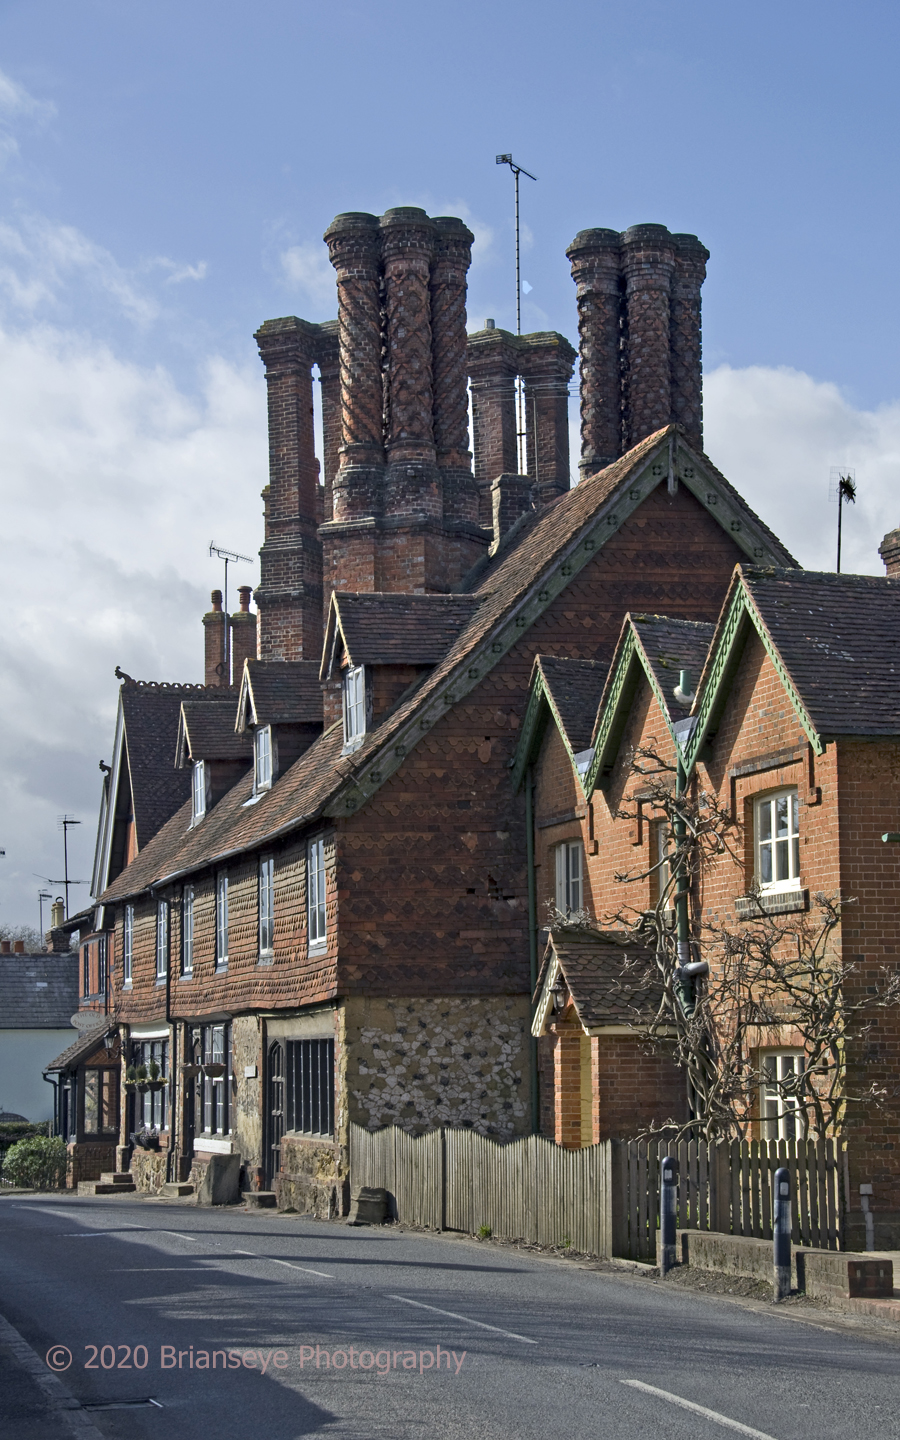 Chimneys at Albury in Surrey